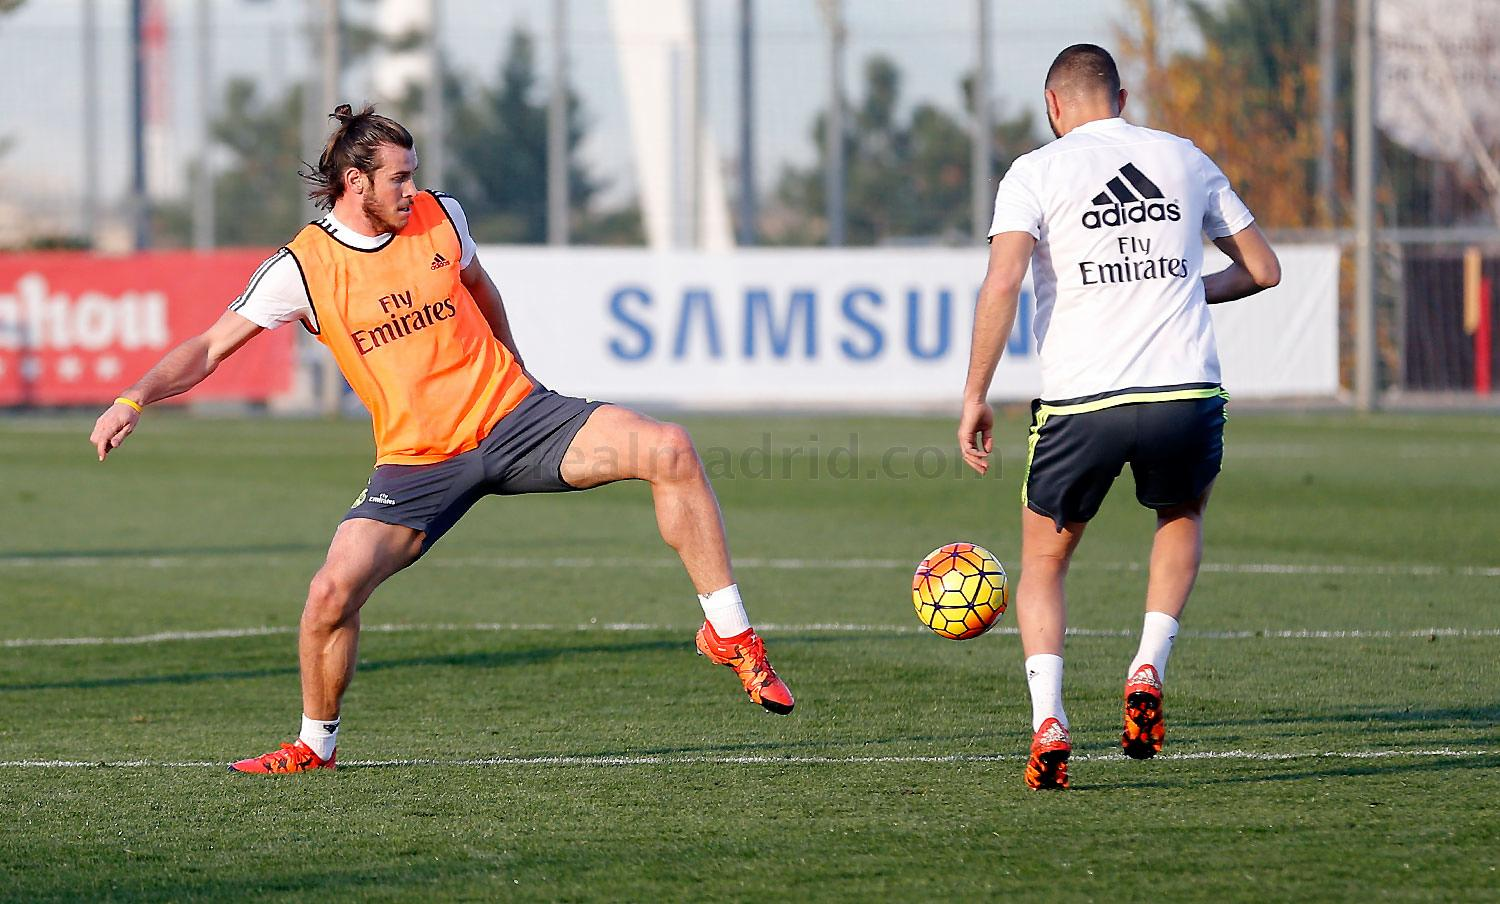 Real Madrid - Entrenamiento del Real Madrid - 18-11-2015